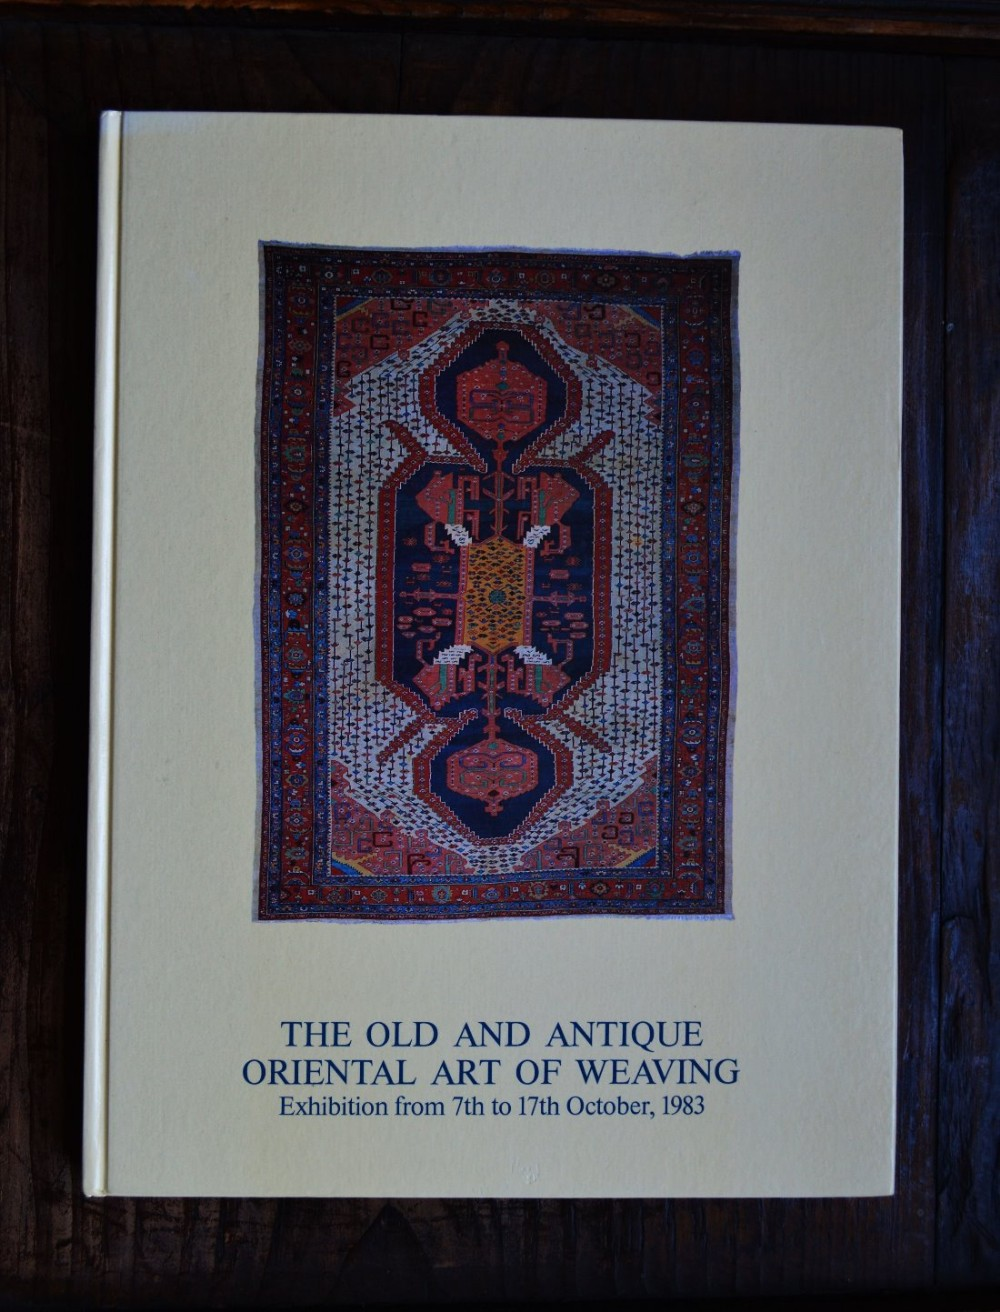 'the old and antique oriental art of weaving' by peter bausback